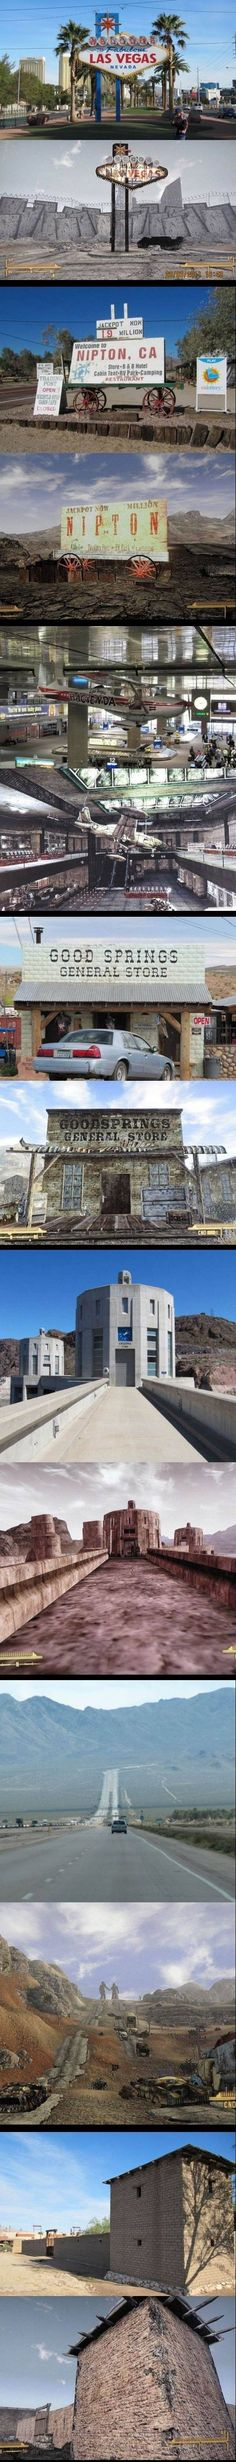 Fallout World vs Real World - Imgur